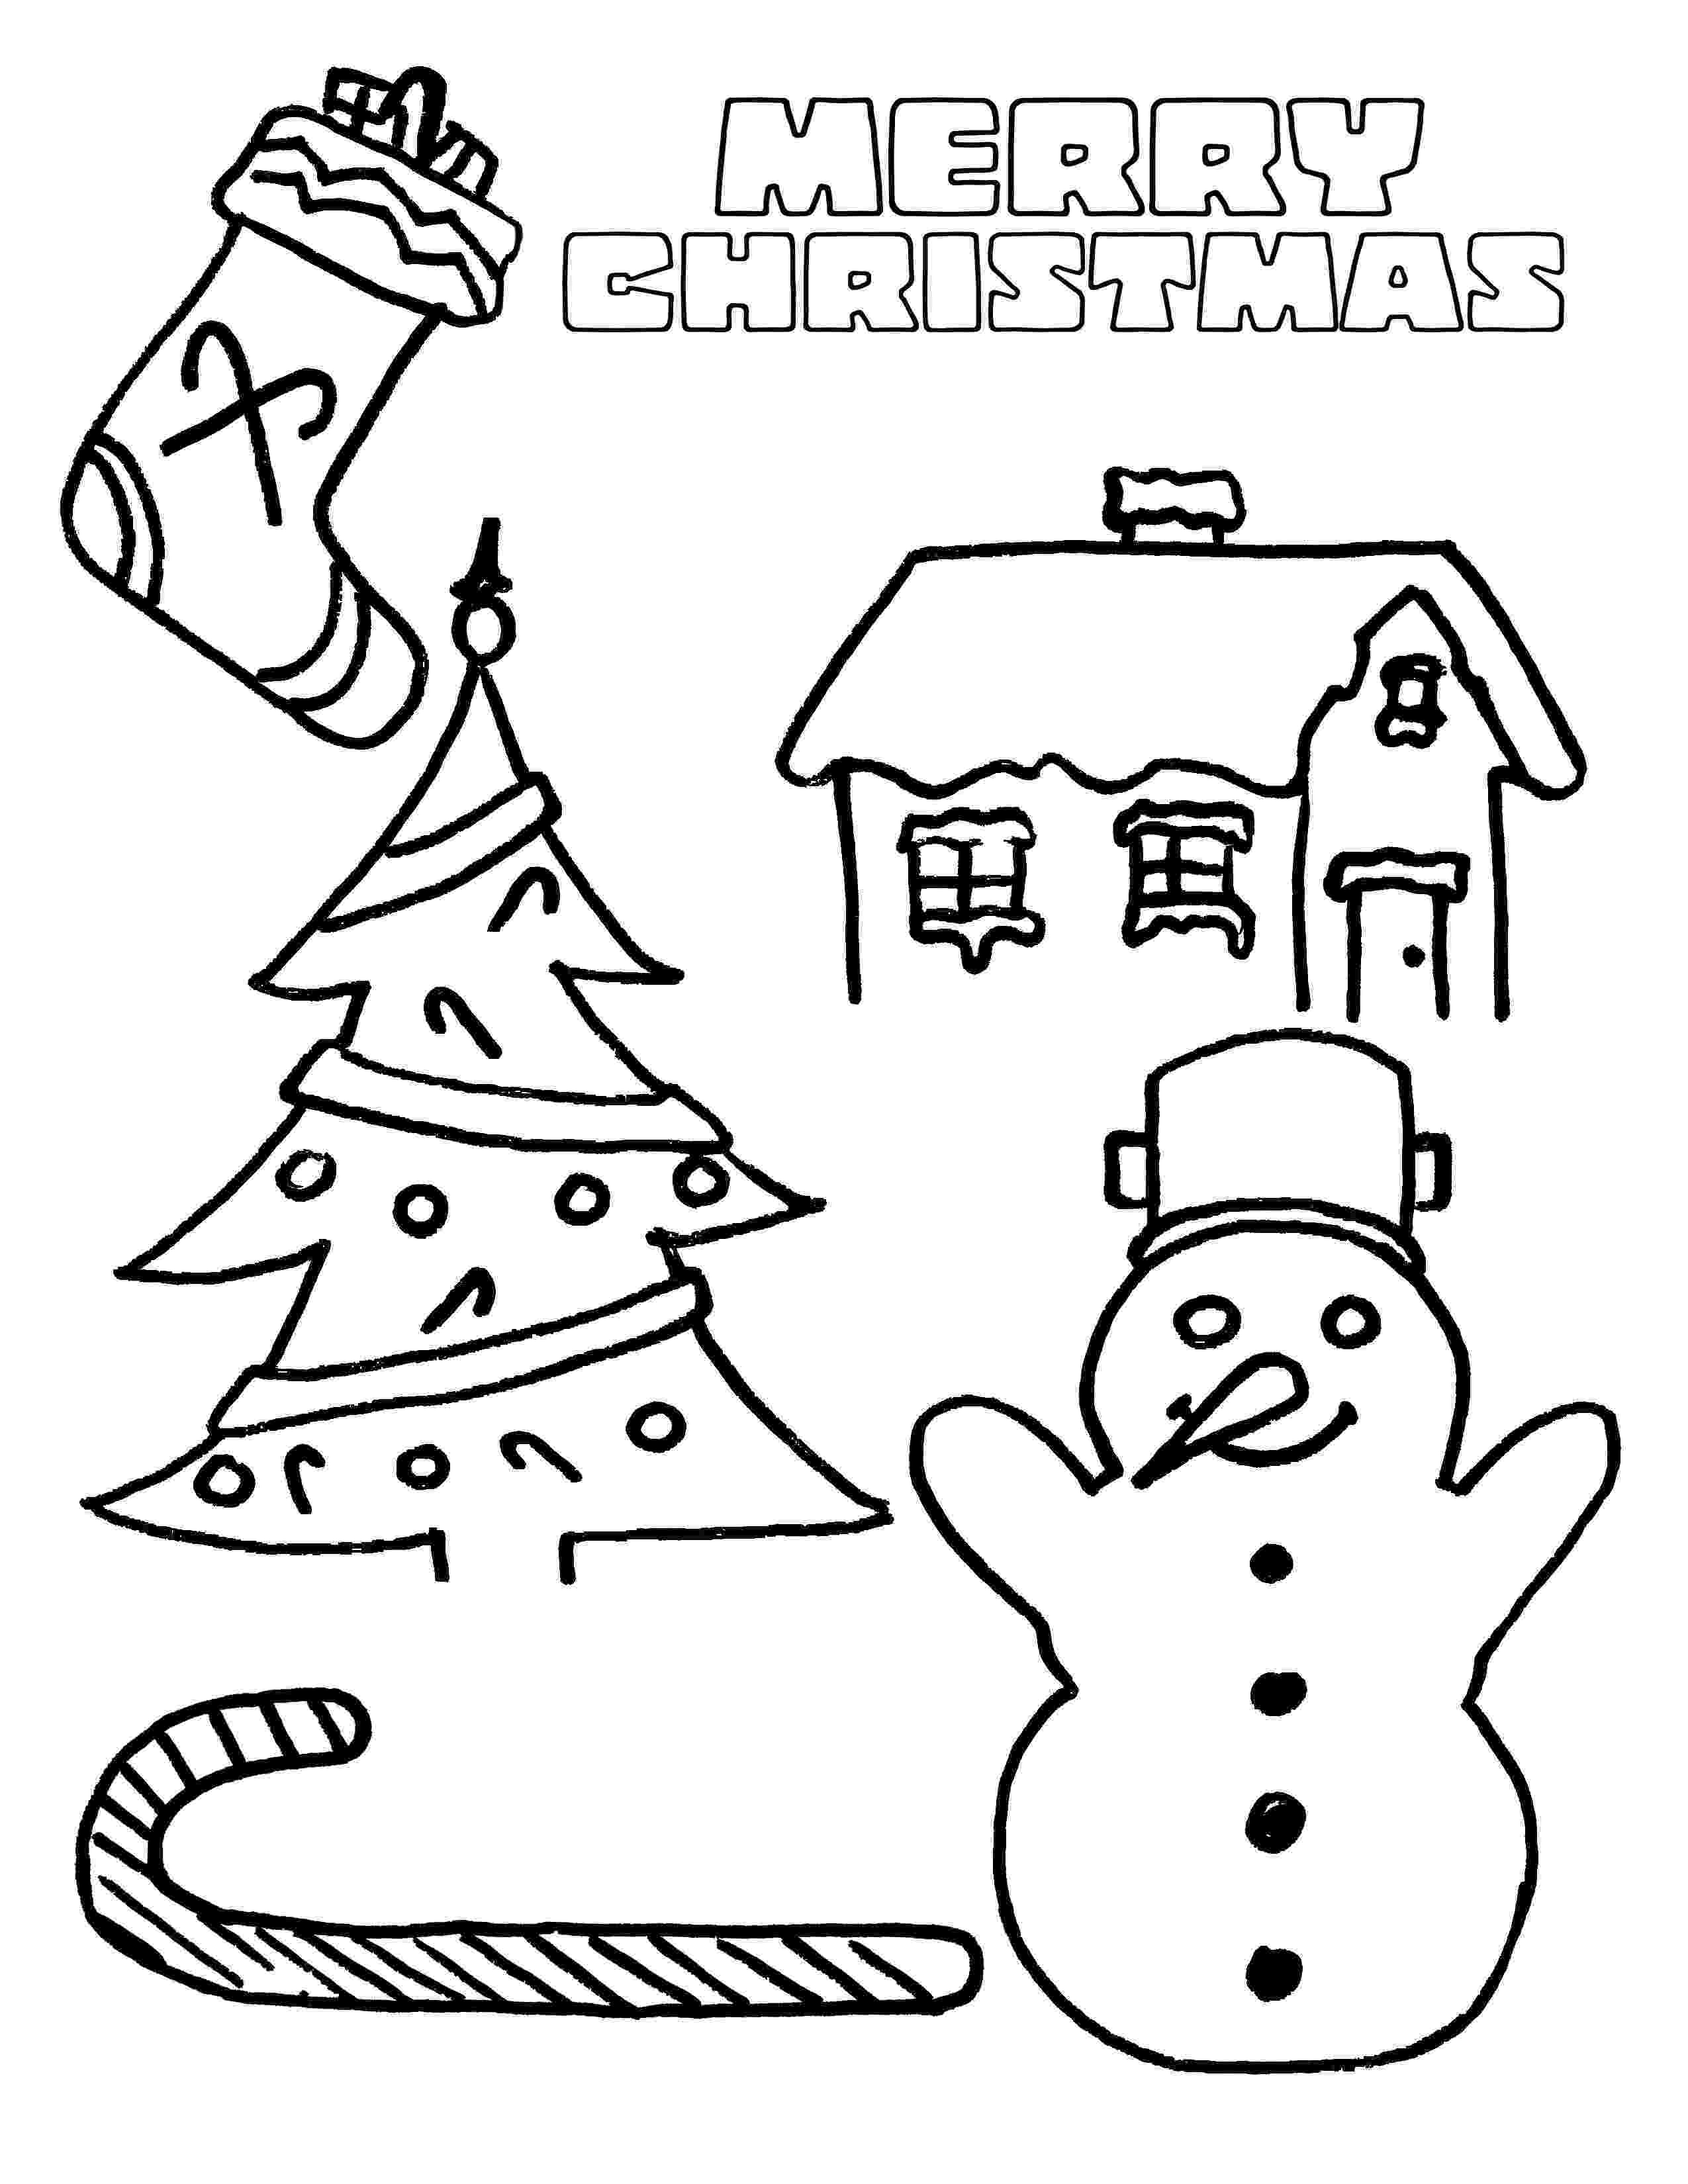 holiday coloring pictures party simplicity free christmas coloring page for kids pictures holiday coloring